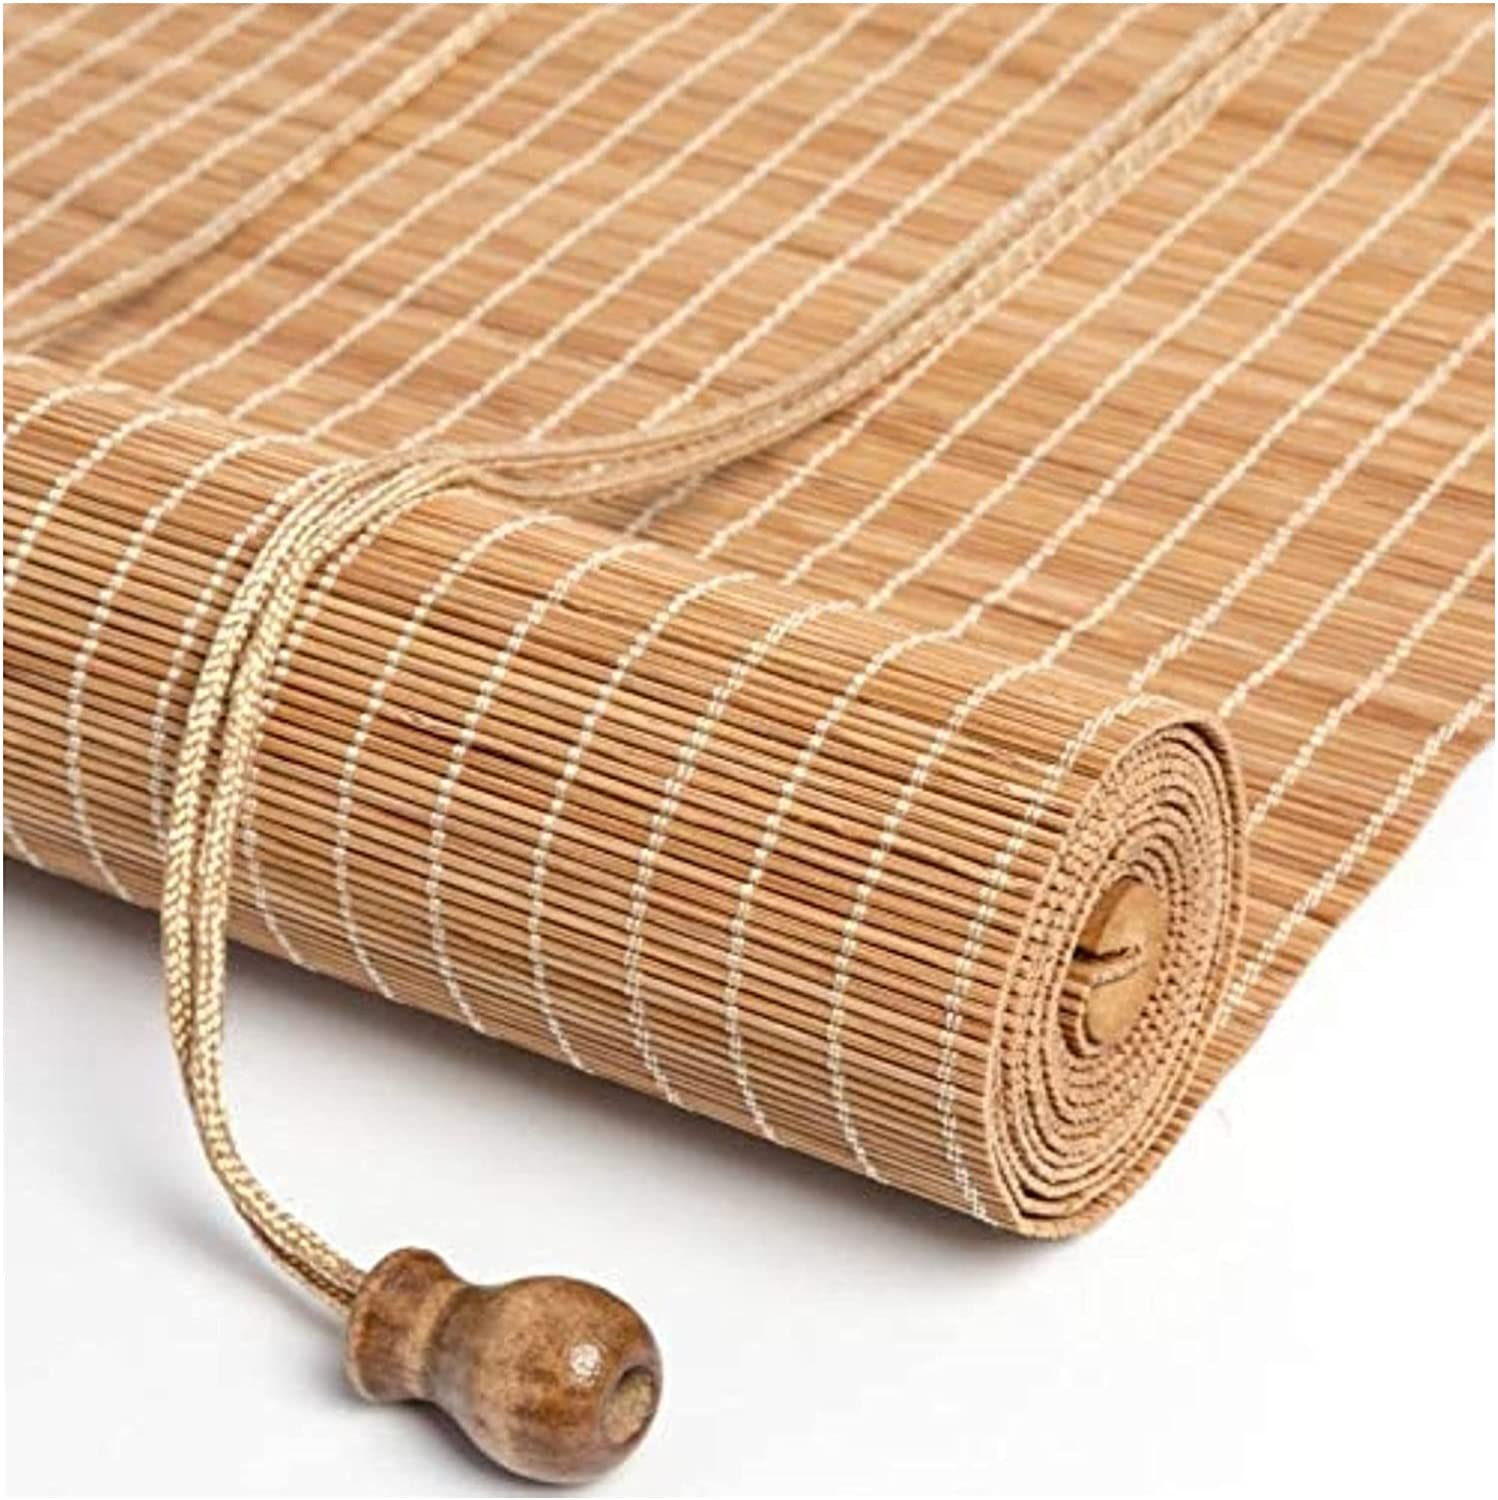 Bamboo Blinds shop for Windows Chicago Mall Home Sun Rol Venetian Filtering